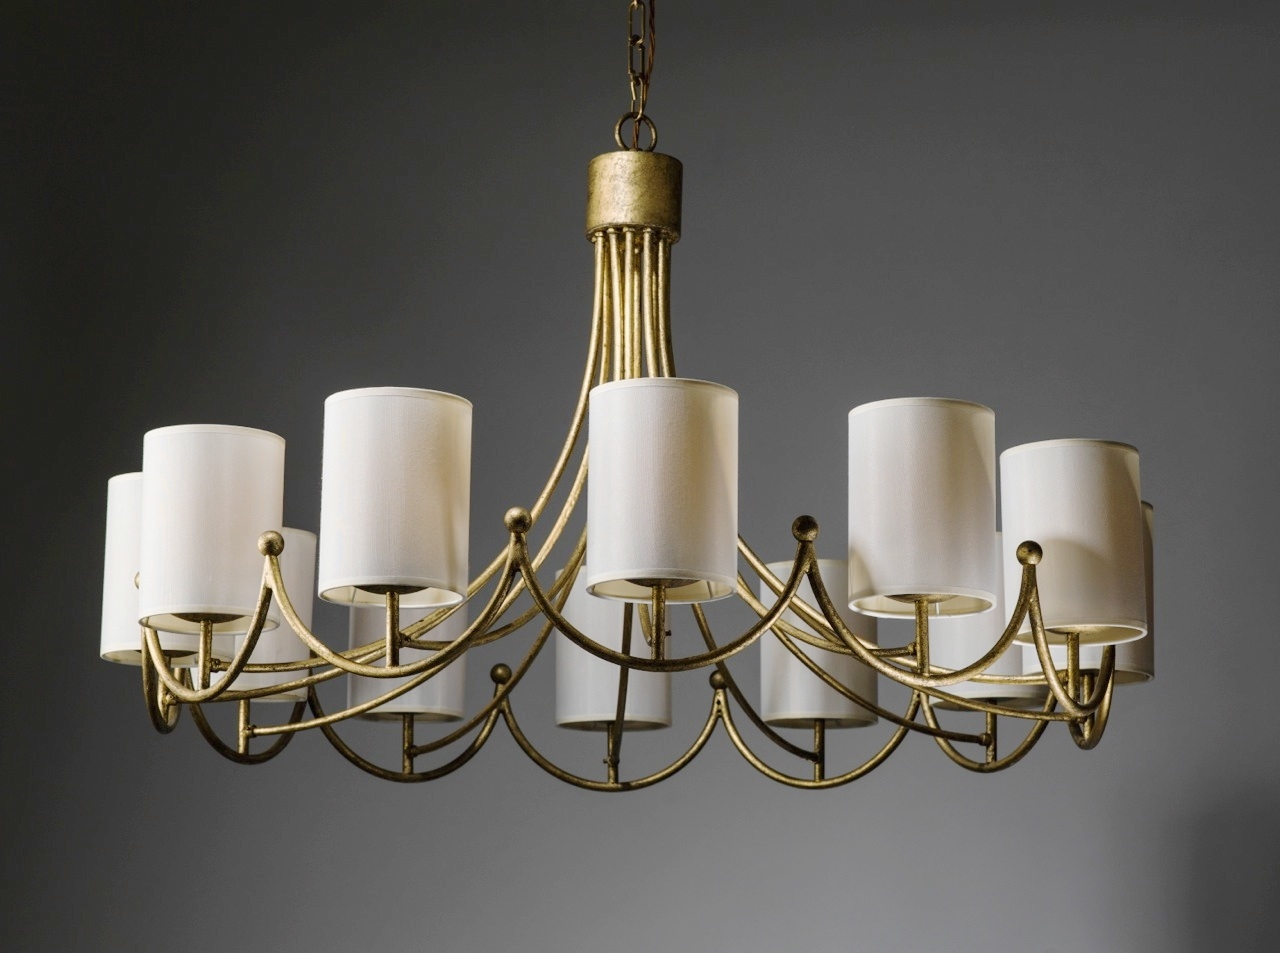 Royere Inspired Wrought Iron 12 Light Chandelier In Distressed Regarding Cream Gold Chandelier (Image 10 of 15)